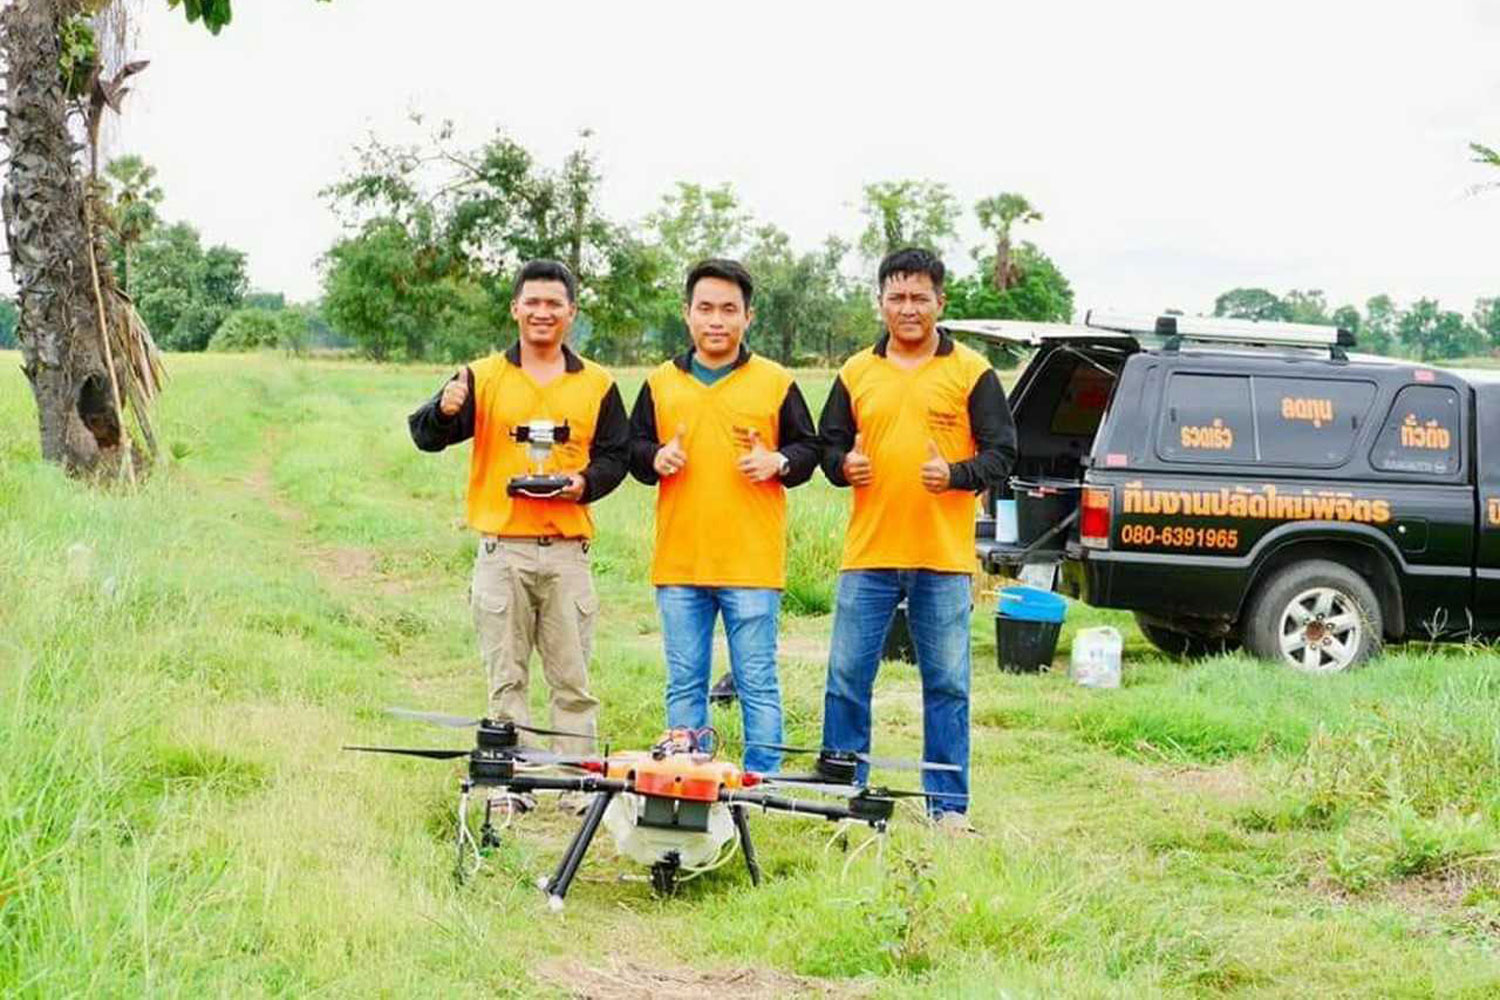 Local farmer's drone spraying service in high demand